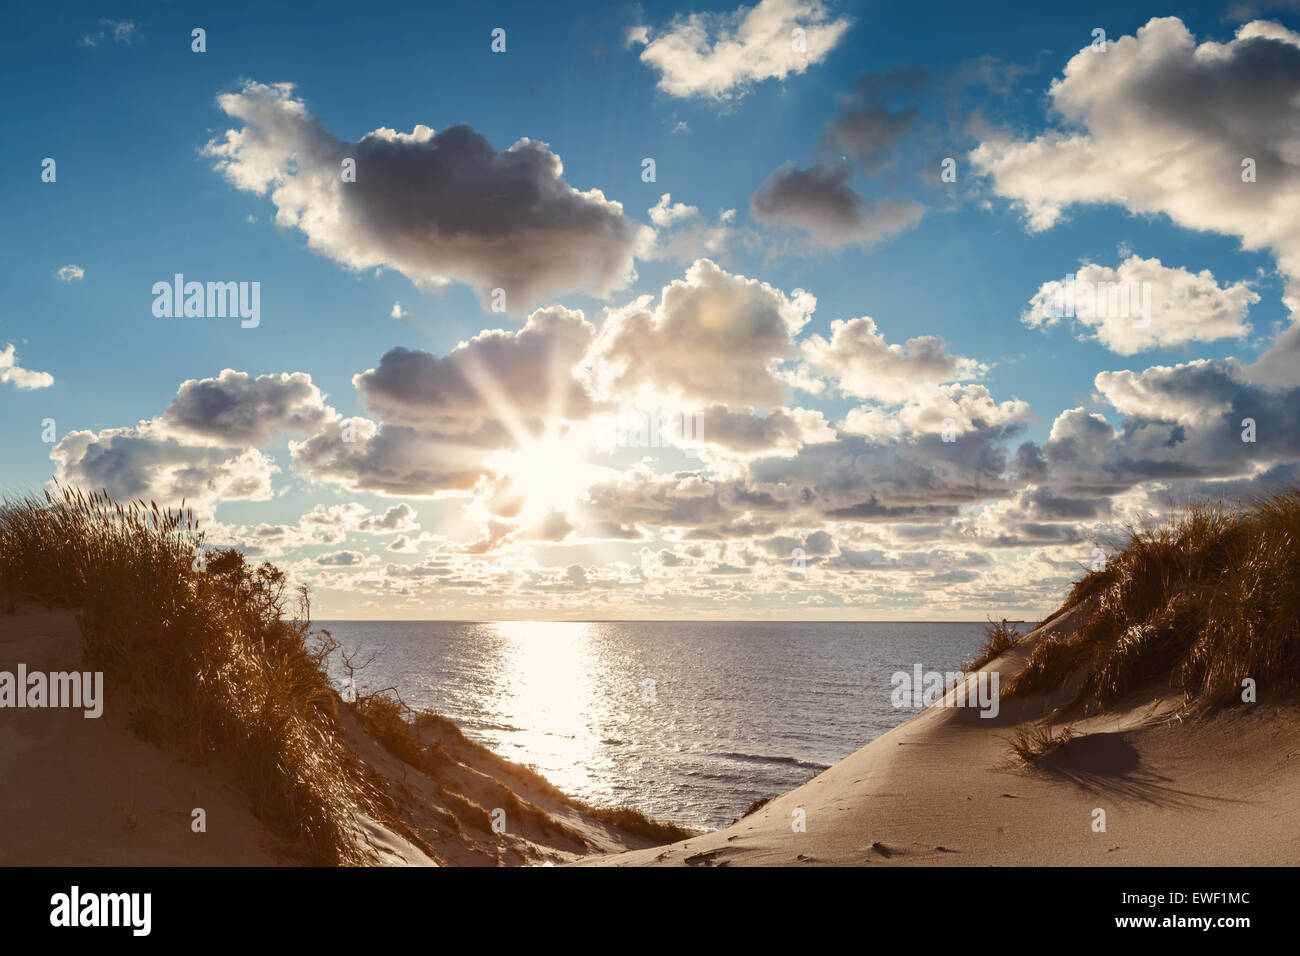 Sunset landscape with sun,clouds and dunes - Stock Image